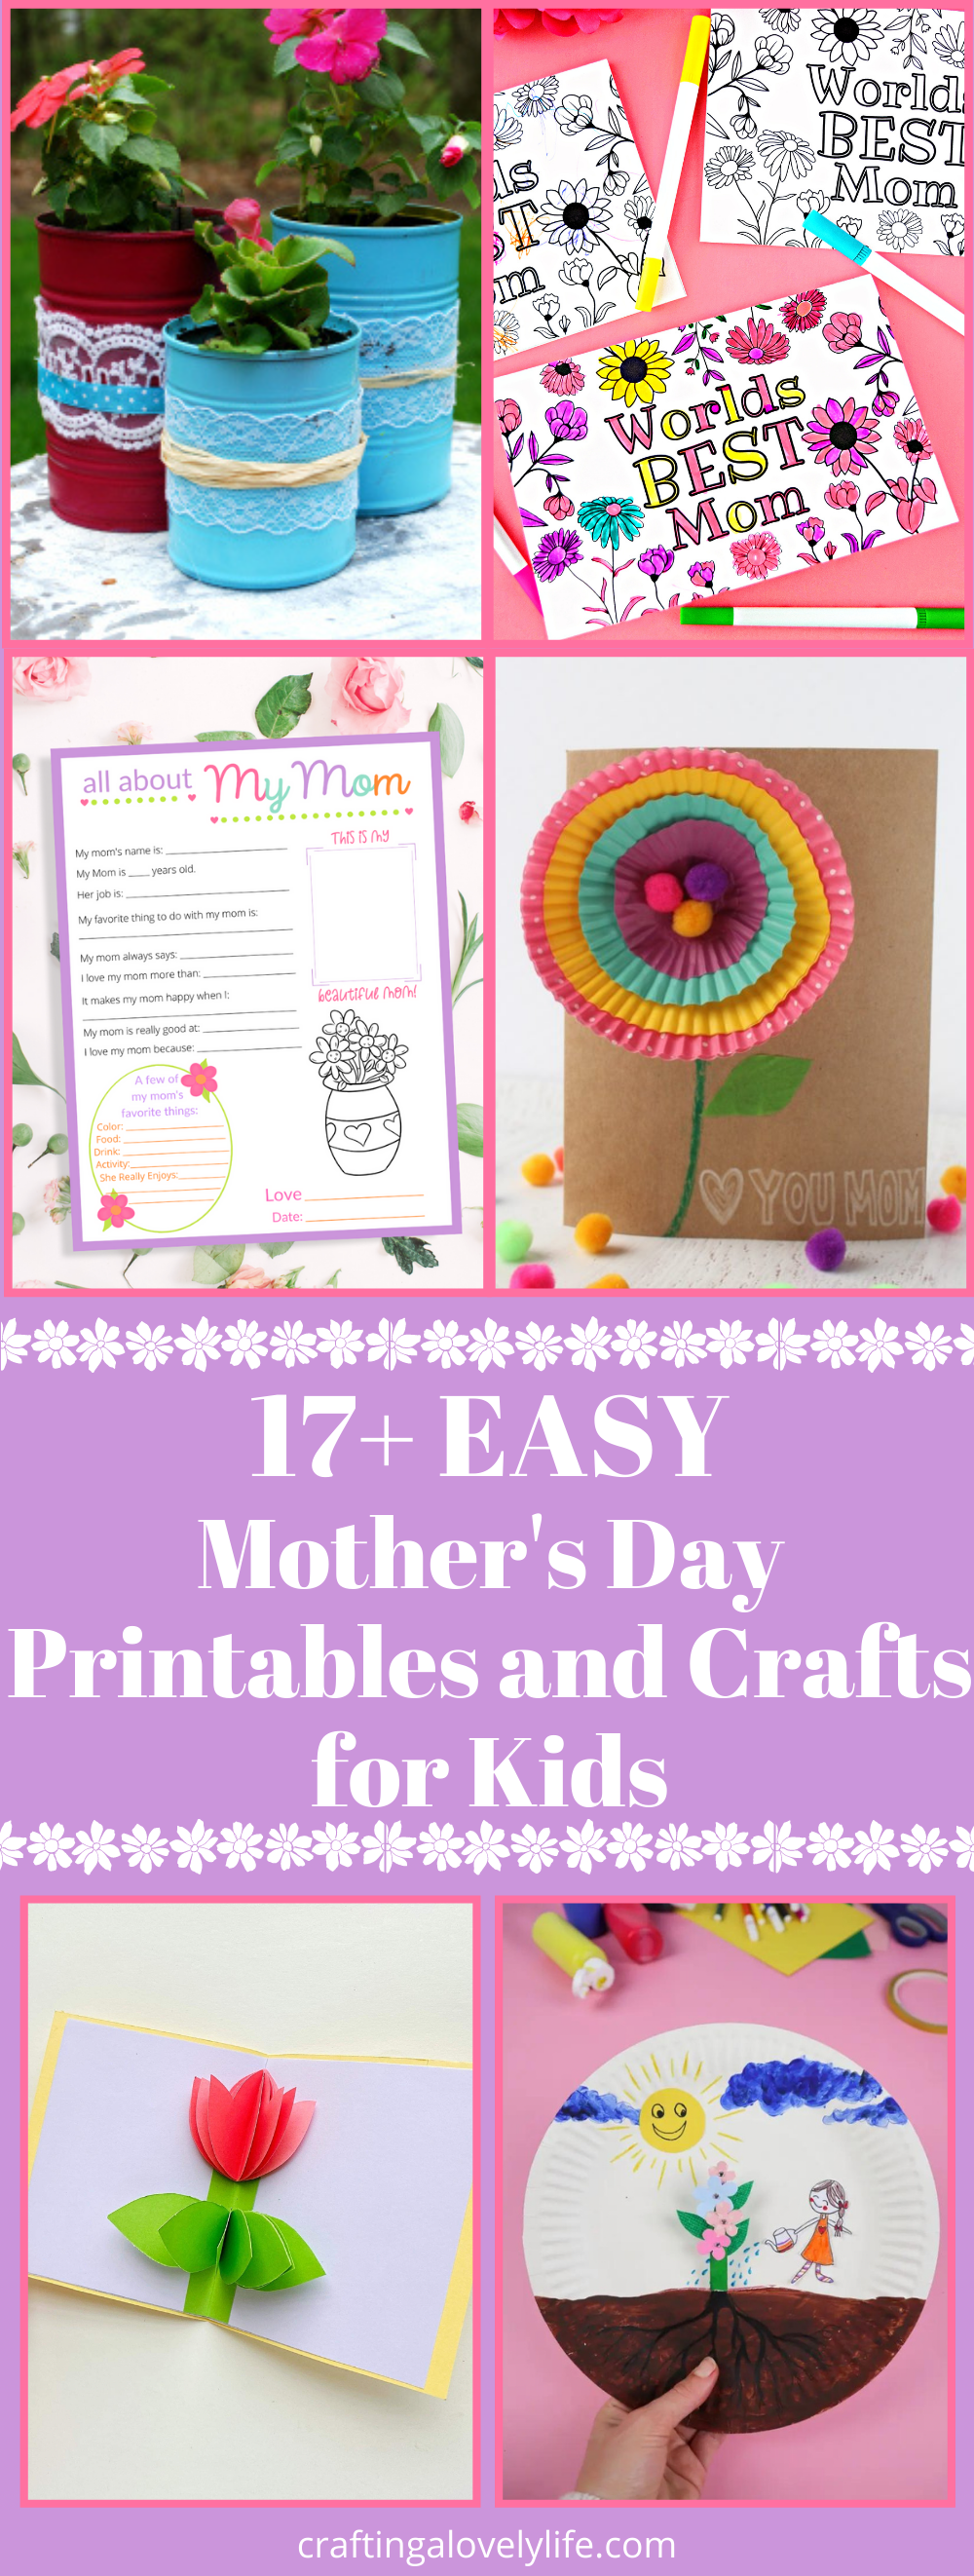 Free Mother's Day Printables and Crafts For Kids